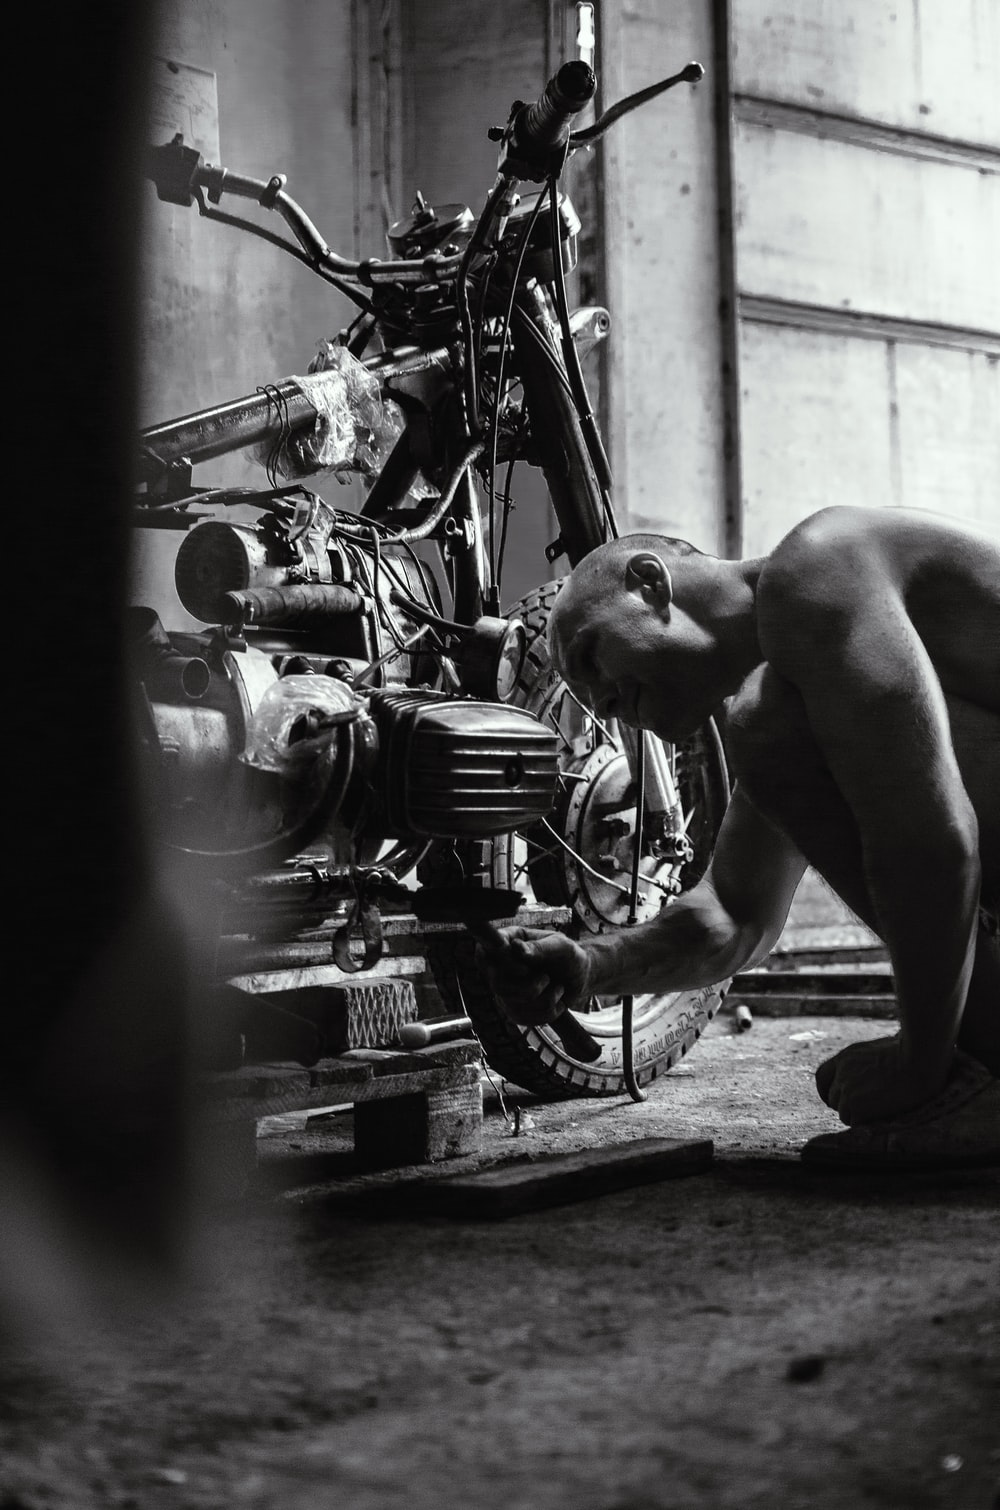 grayscale photography of man fixing motorcycle